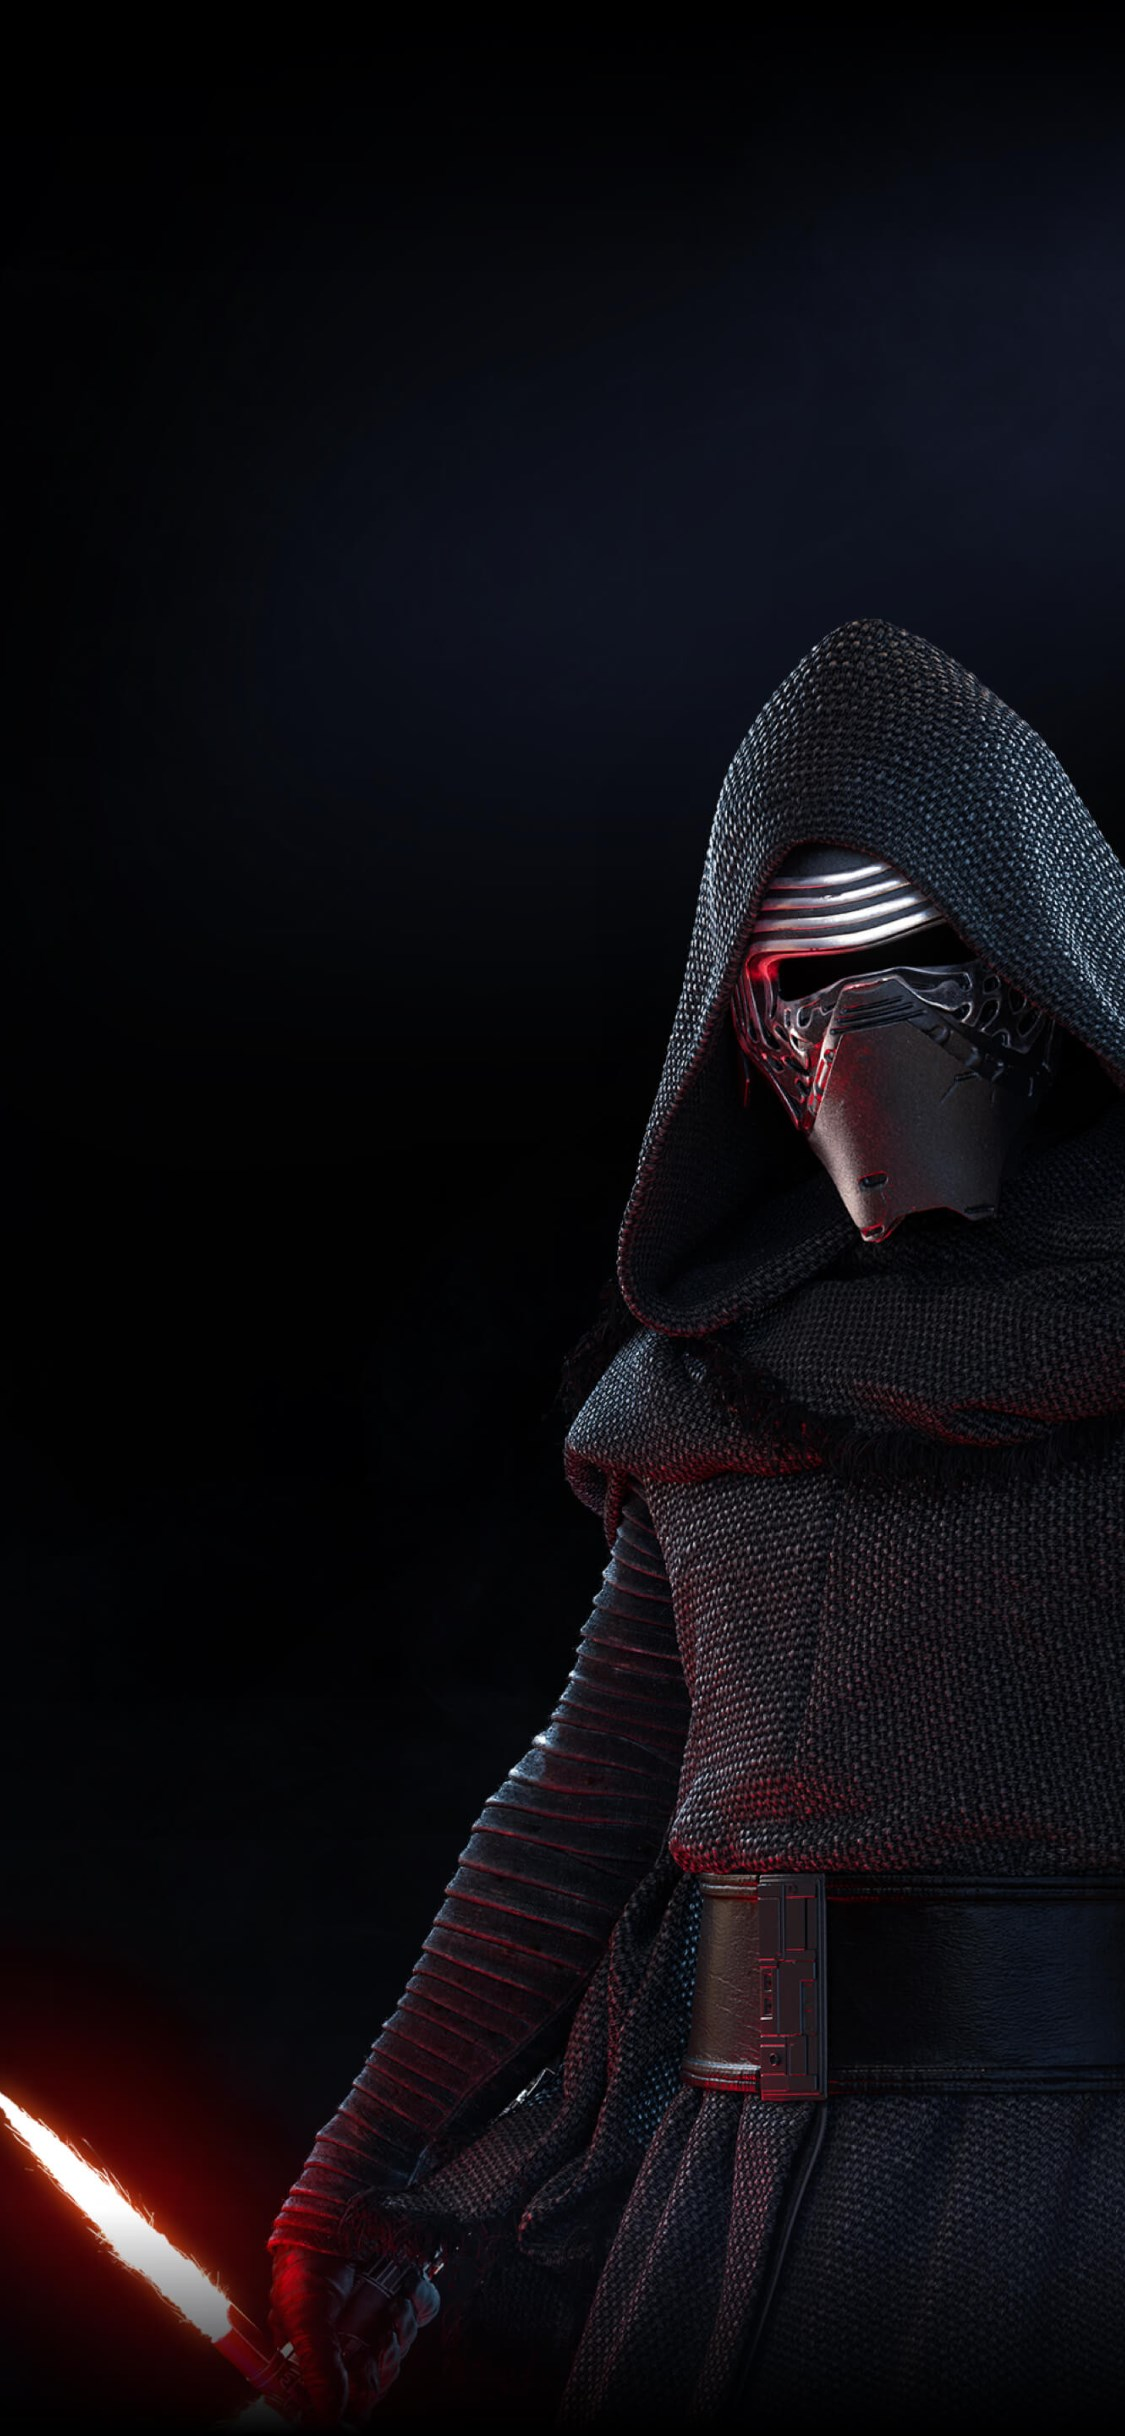 Kylo Ren from Star Wars Battlefront 2 wallpaper 1125x2436